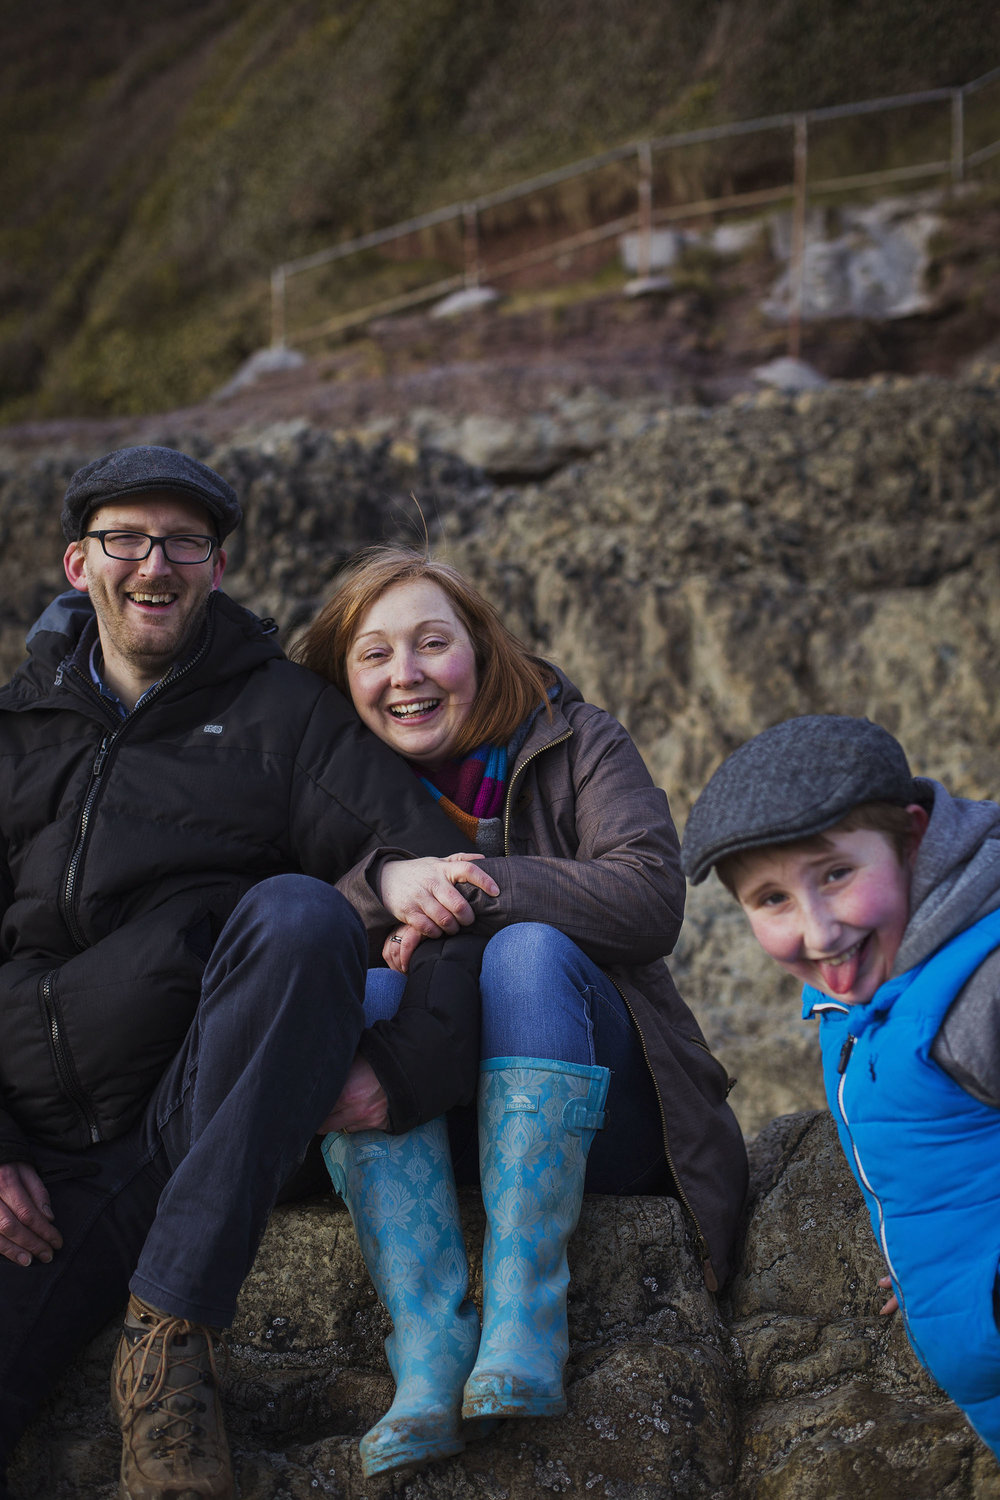 family photoshoot at llansteffan beach in carmarthen